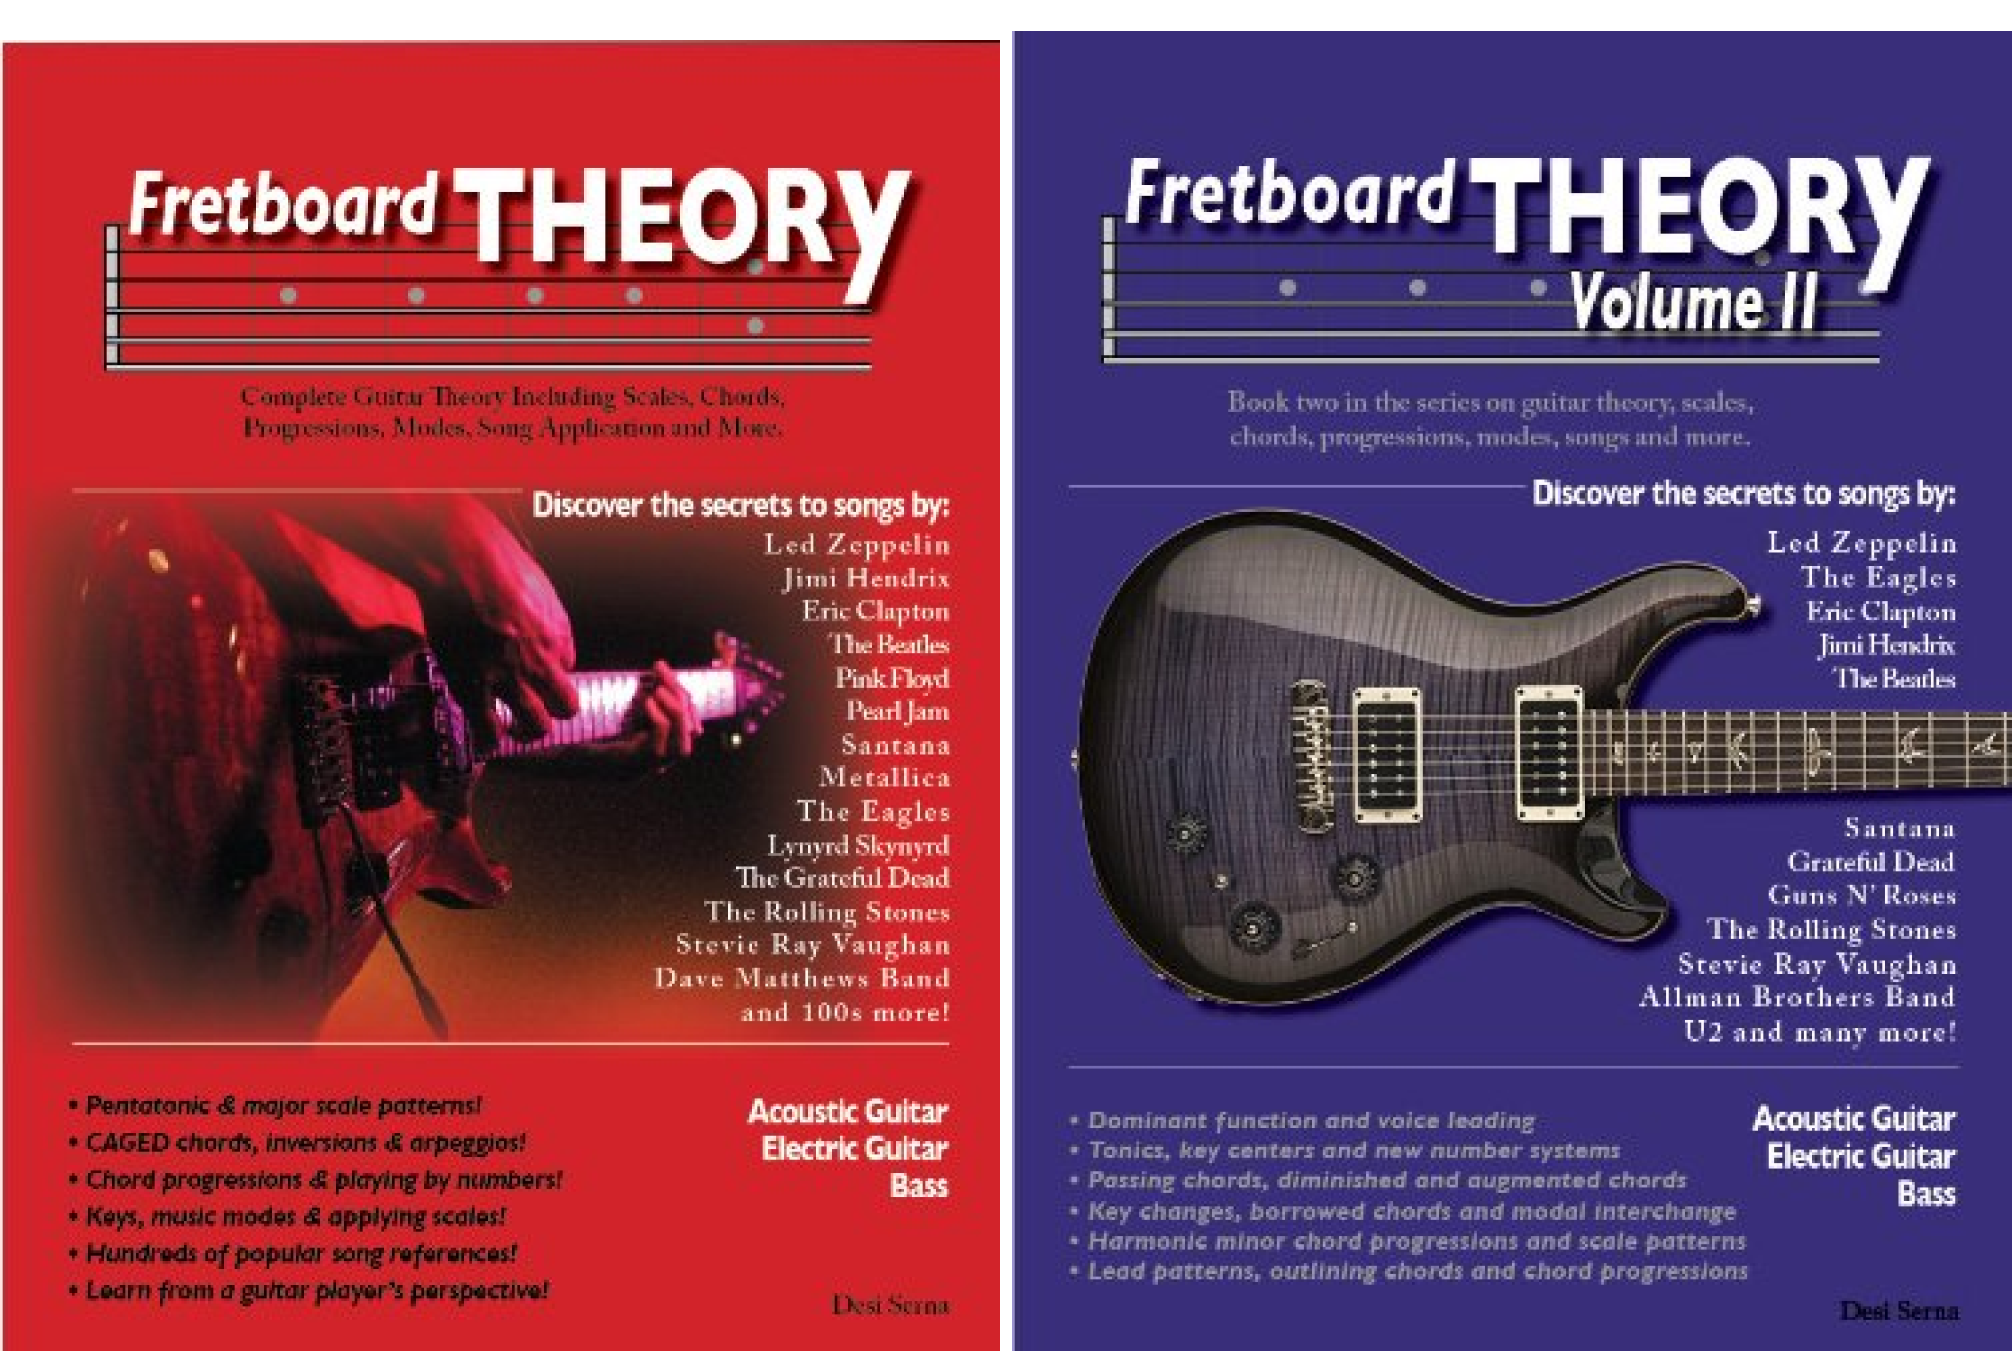 Fretboard Theory Volumes I Ii Combined The Complete Guitar Theory